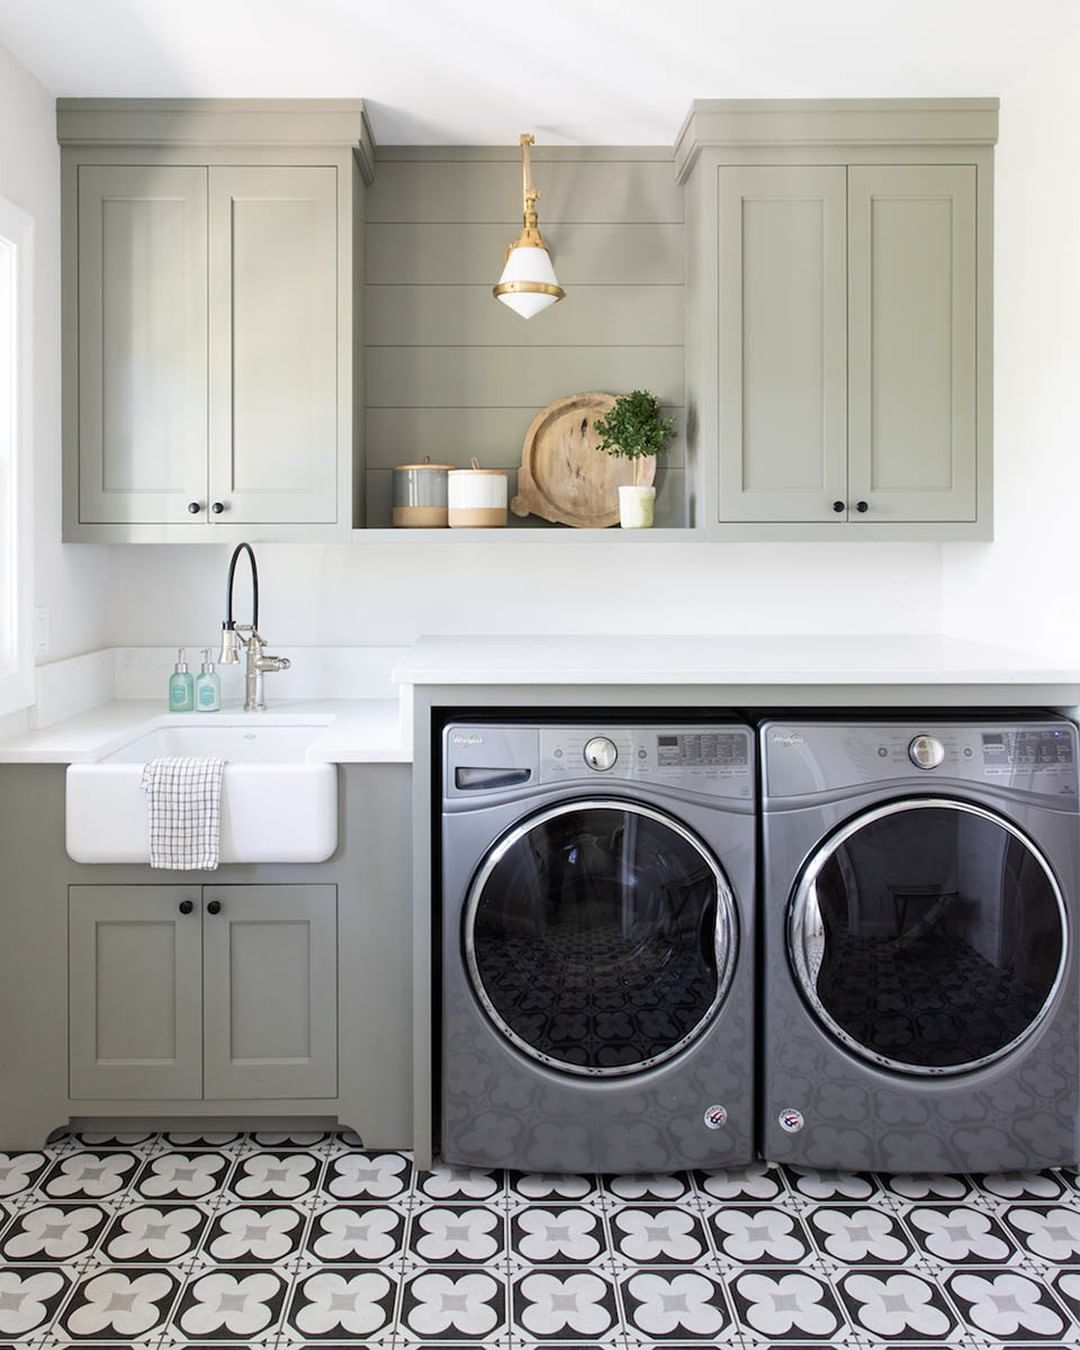 This Newly Finished Laundry Room At Justkeepsmilinclient Makes